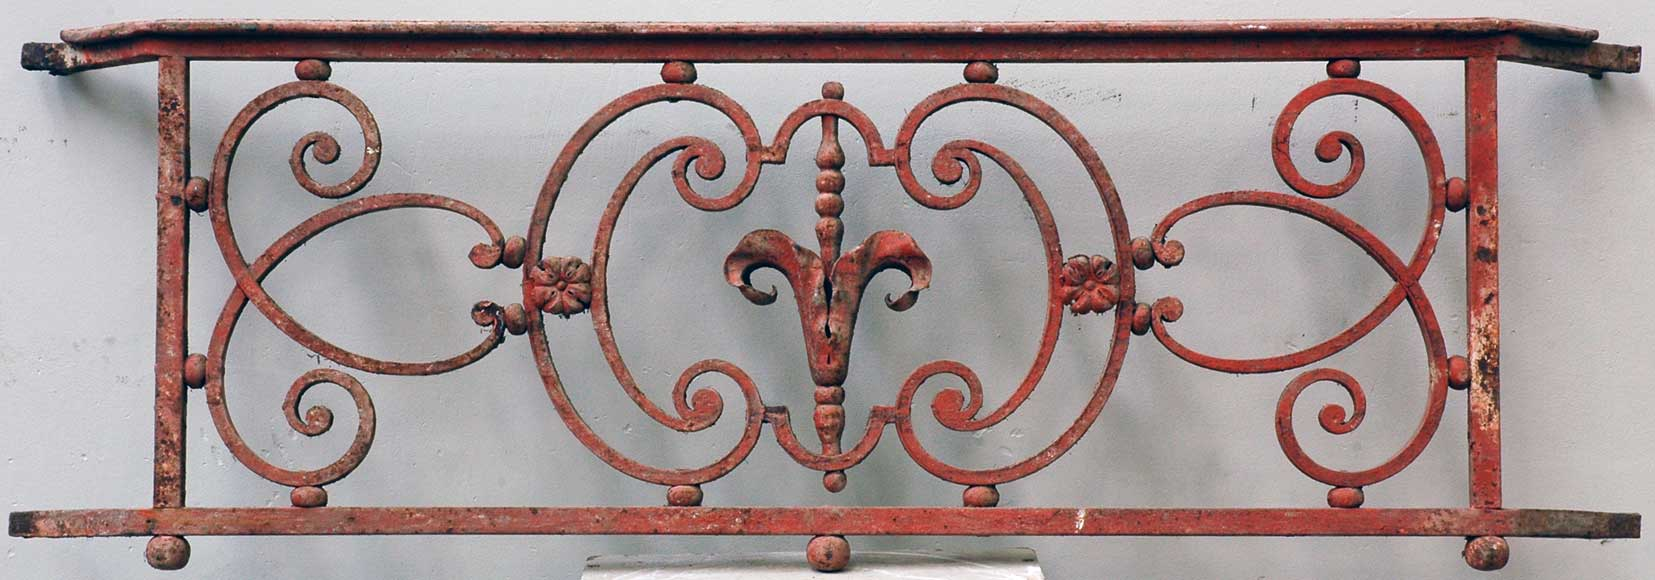 Single 18th century iron balcony railing. - Reference 1250